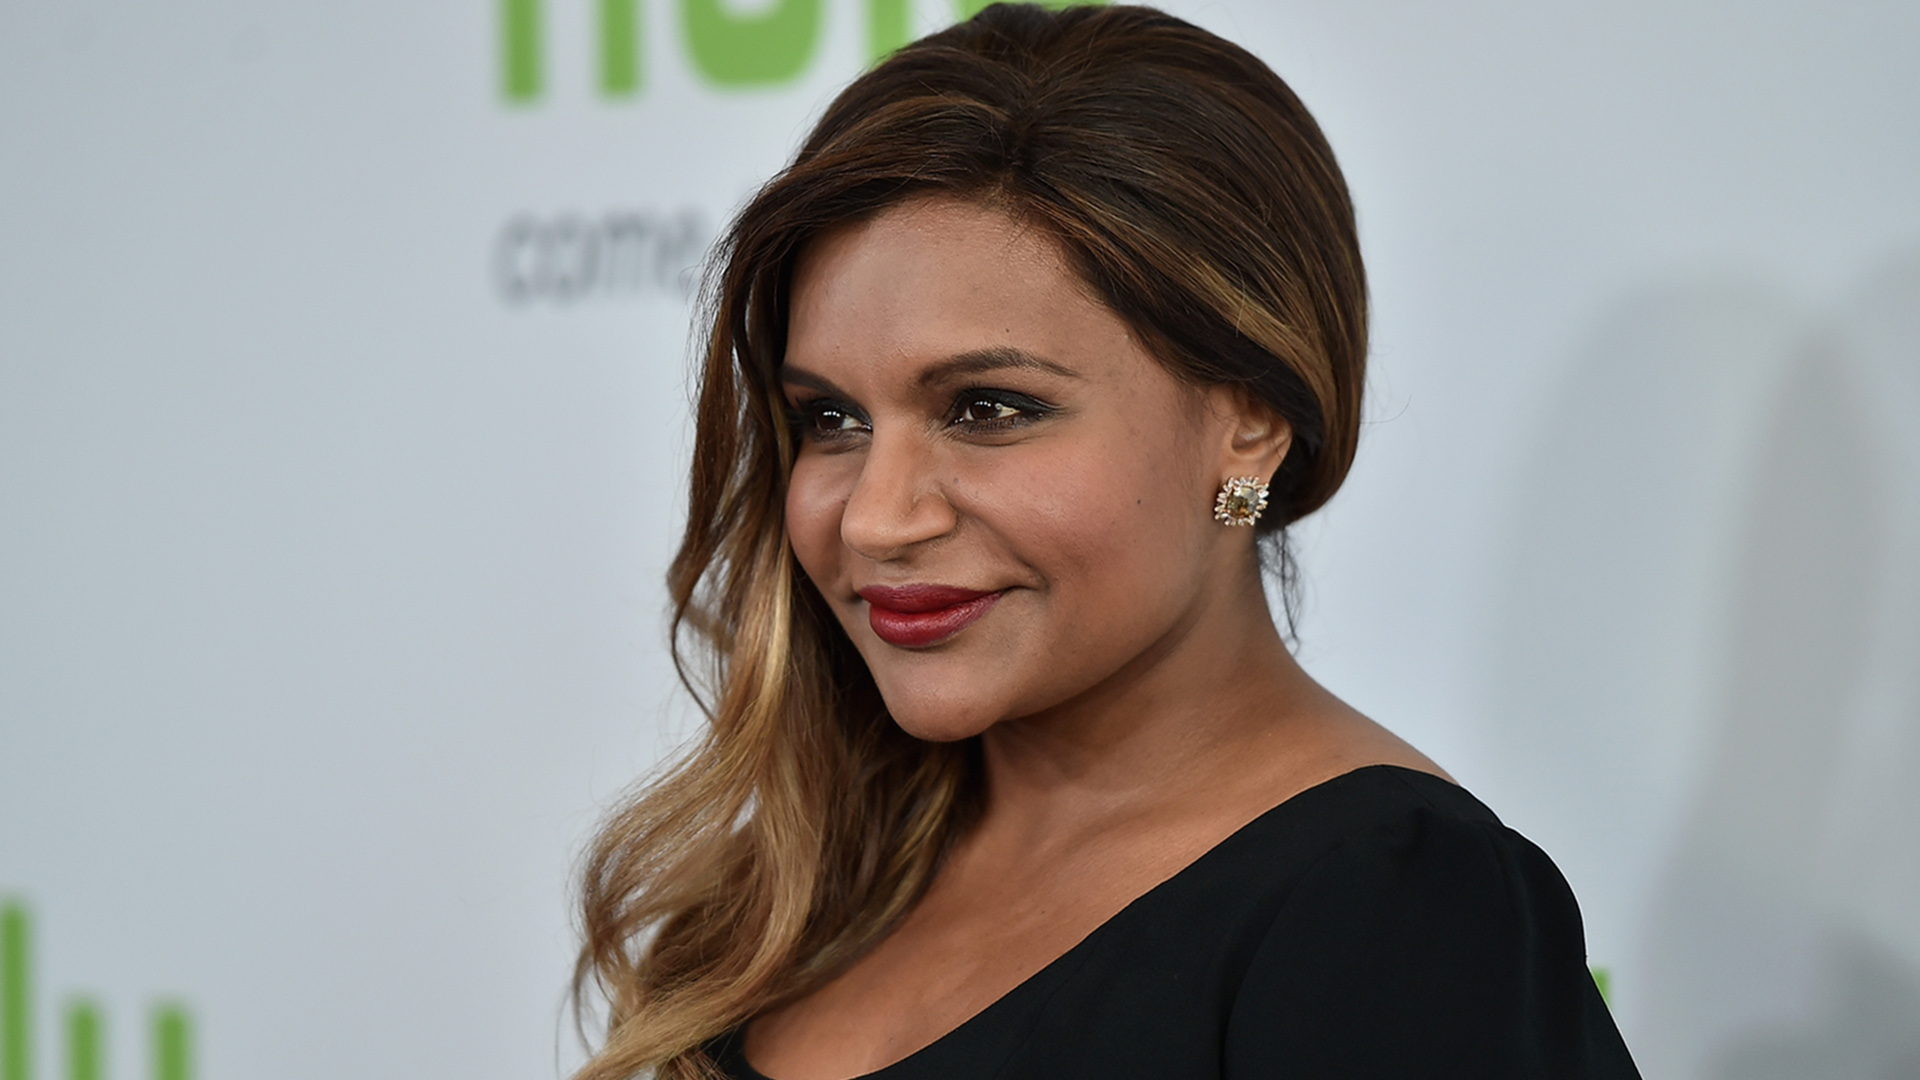 Mindy Kaling chops her hair! See her chic long bob